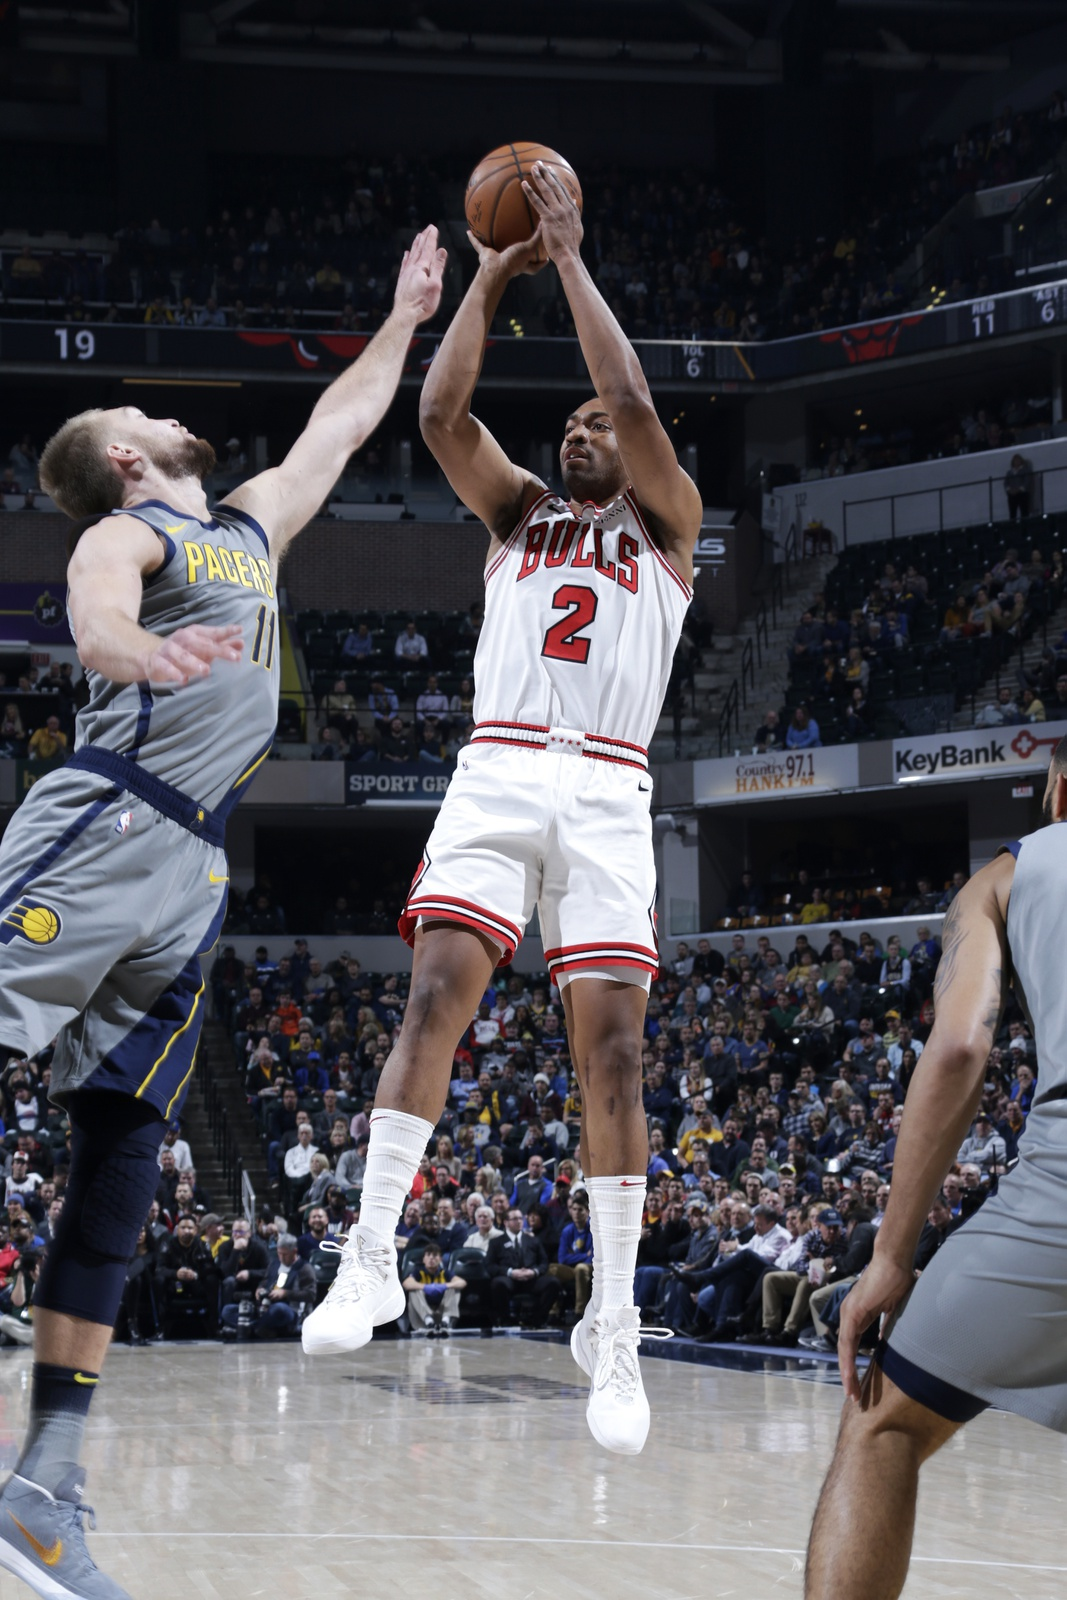 Jabari Parker #2 of the Chicago Bulls shoots the ball against the Indiana Pacers on December 4, 2018 at Bankers Life Fieldhouse in Indianapolis, Indiana.